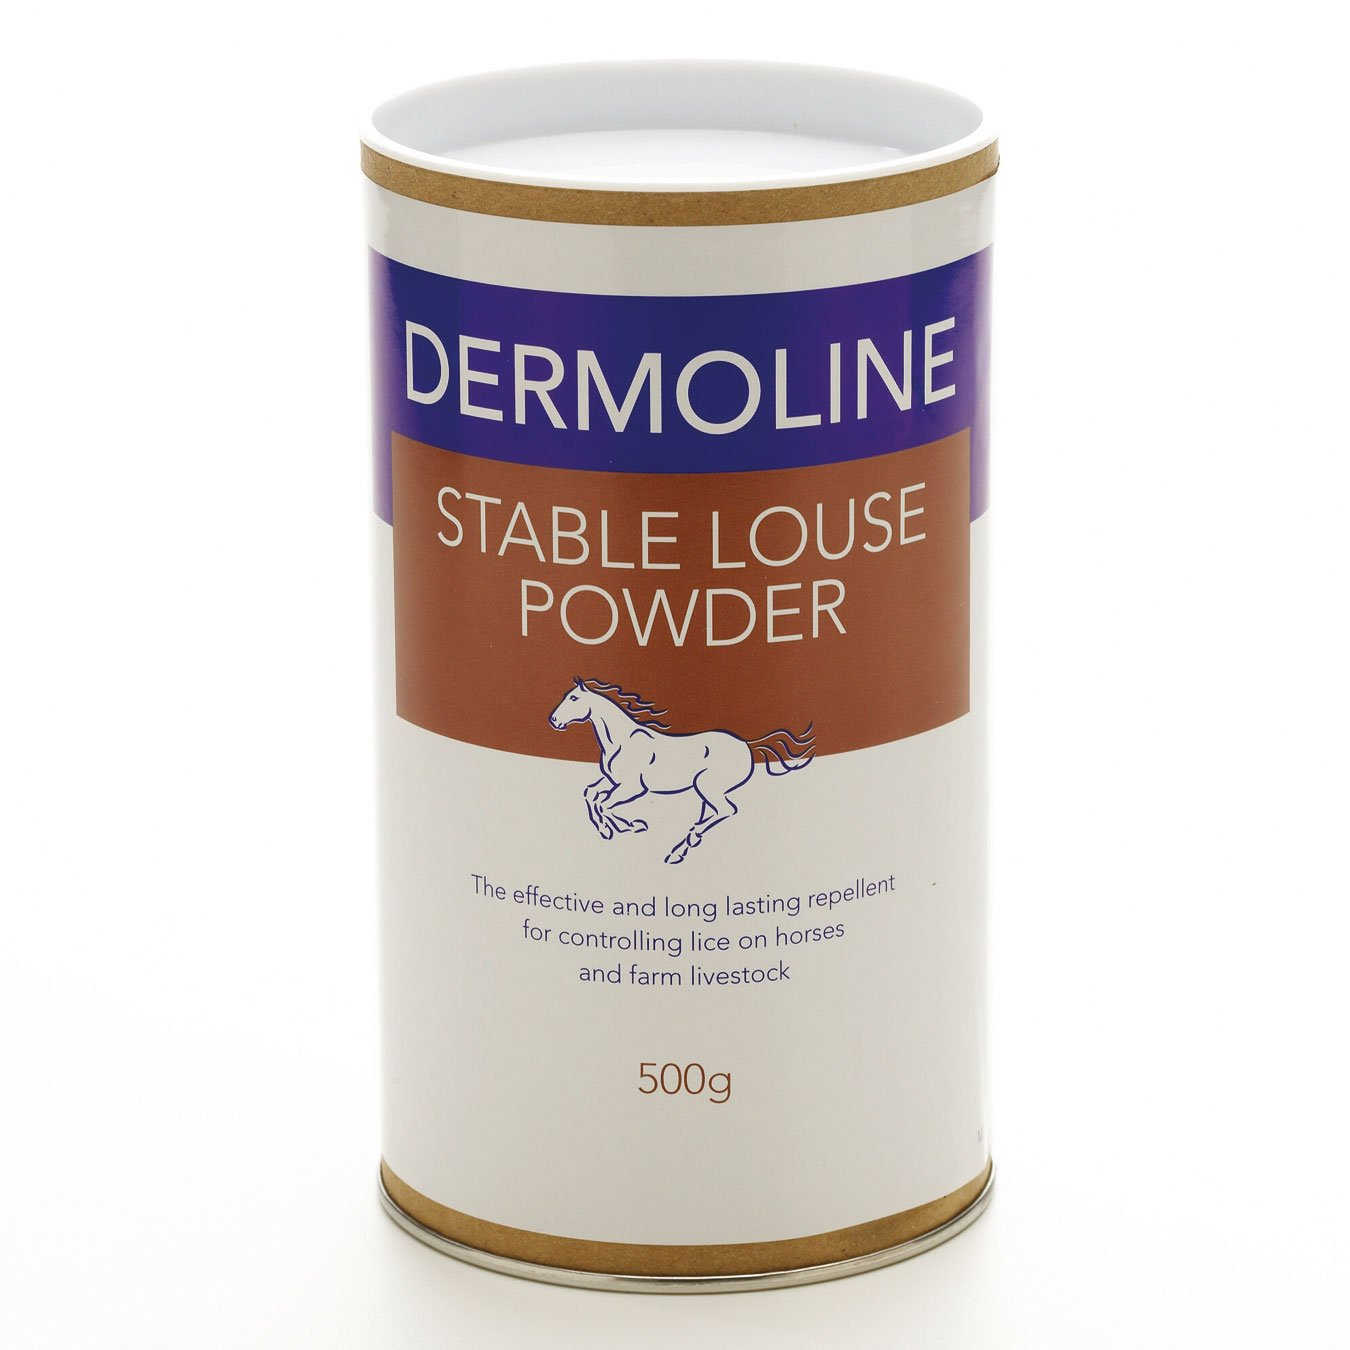 Dermoline Stable Louse Powder 500g- repellent against lice and other external parasites by William Hunter Equestrian (Image #1)